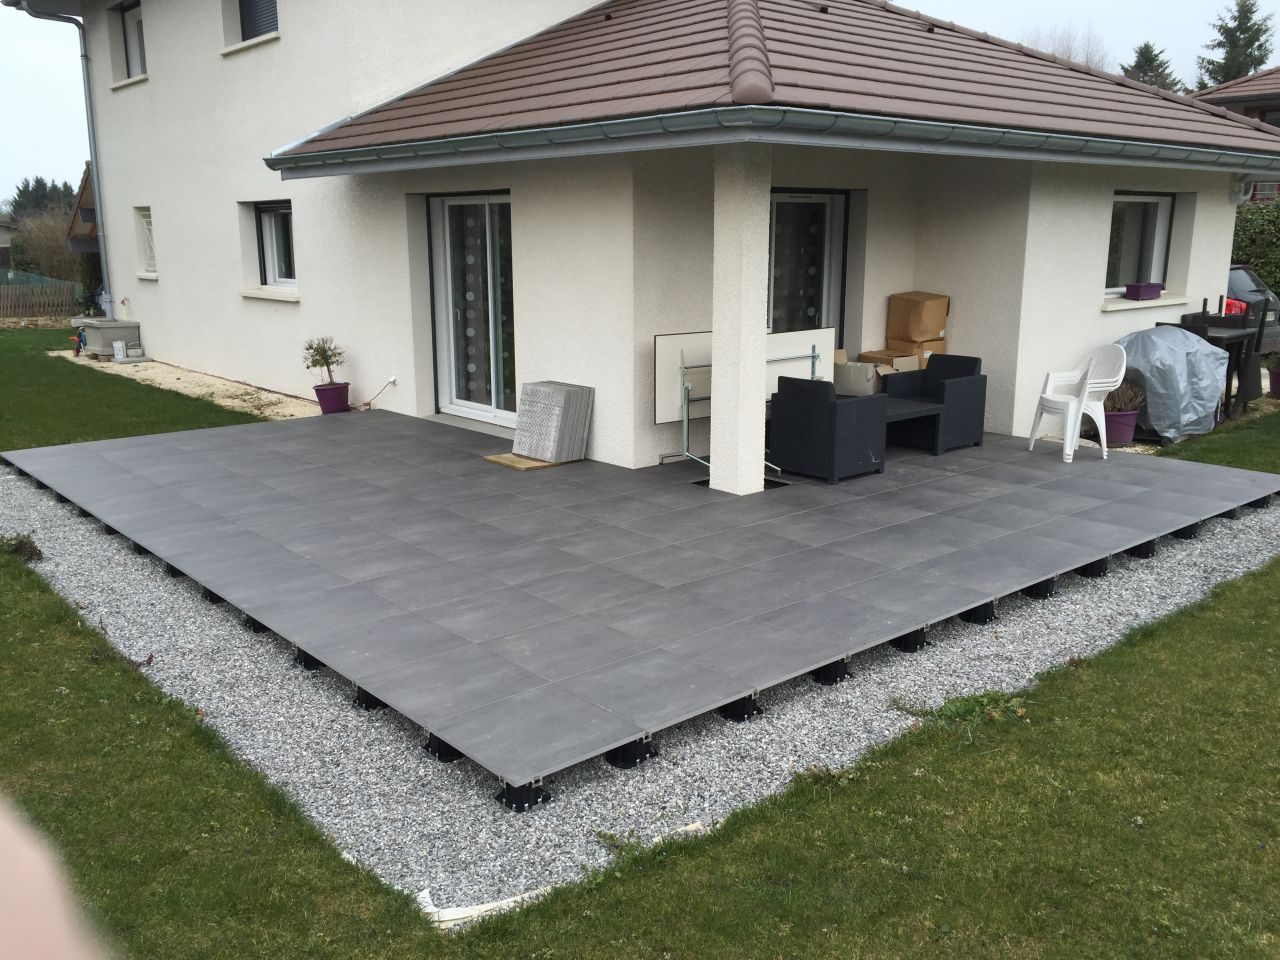 Pose carrelage pose carrelage ext rieur sur dalle b ton for Pose carrelage sur carrelage